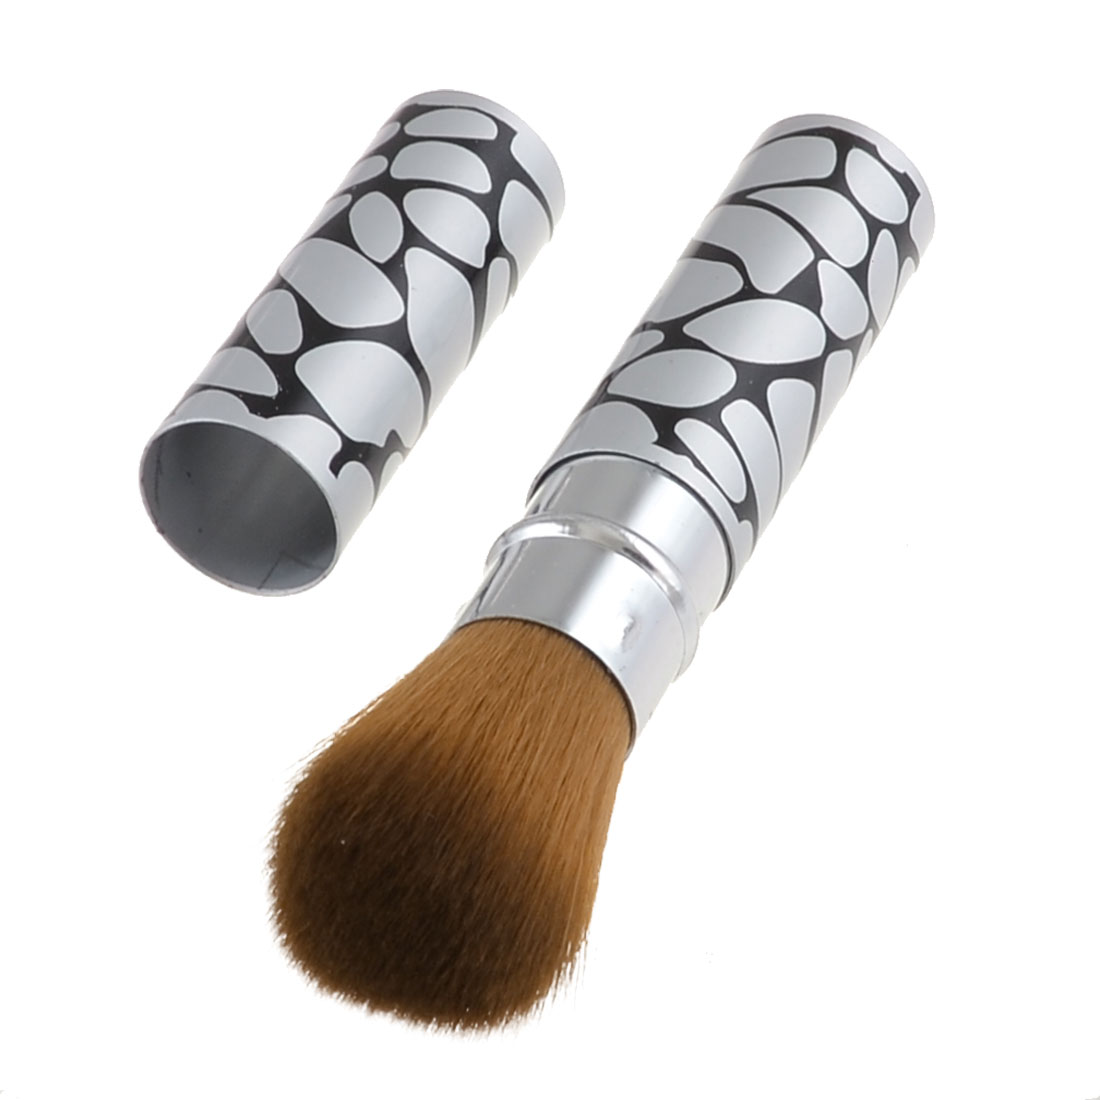 Fashionable Kabuki Blush Brush Powder Foundation Brush Makeup Tool